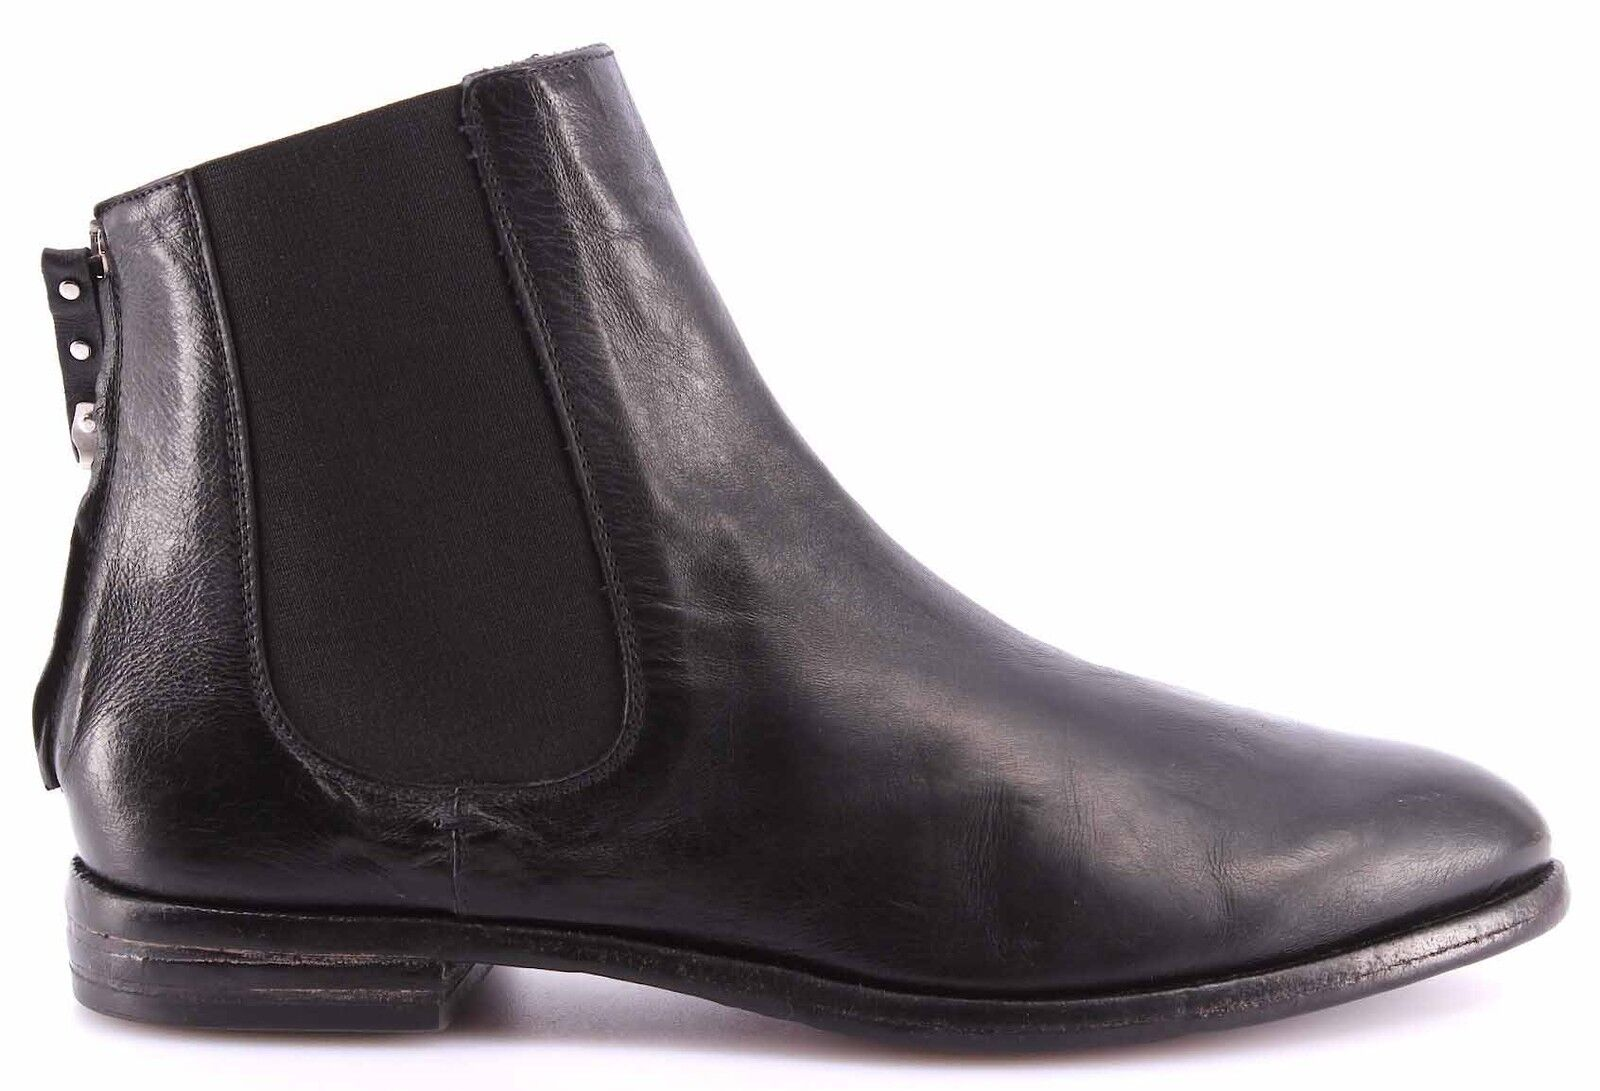 MOMA Scarpe Stivaletto Donna Ankle Boots 98505-5A Sting Nero Pelle Vintage Italy